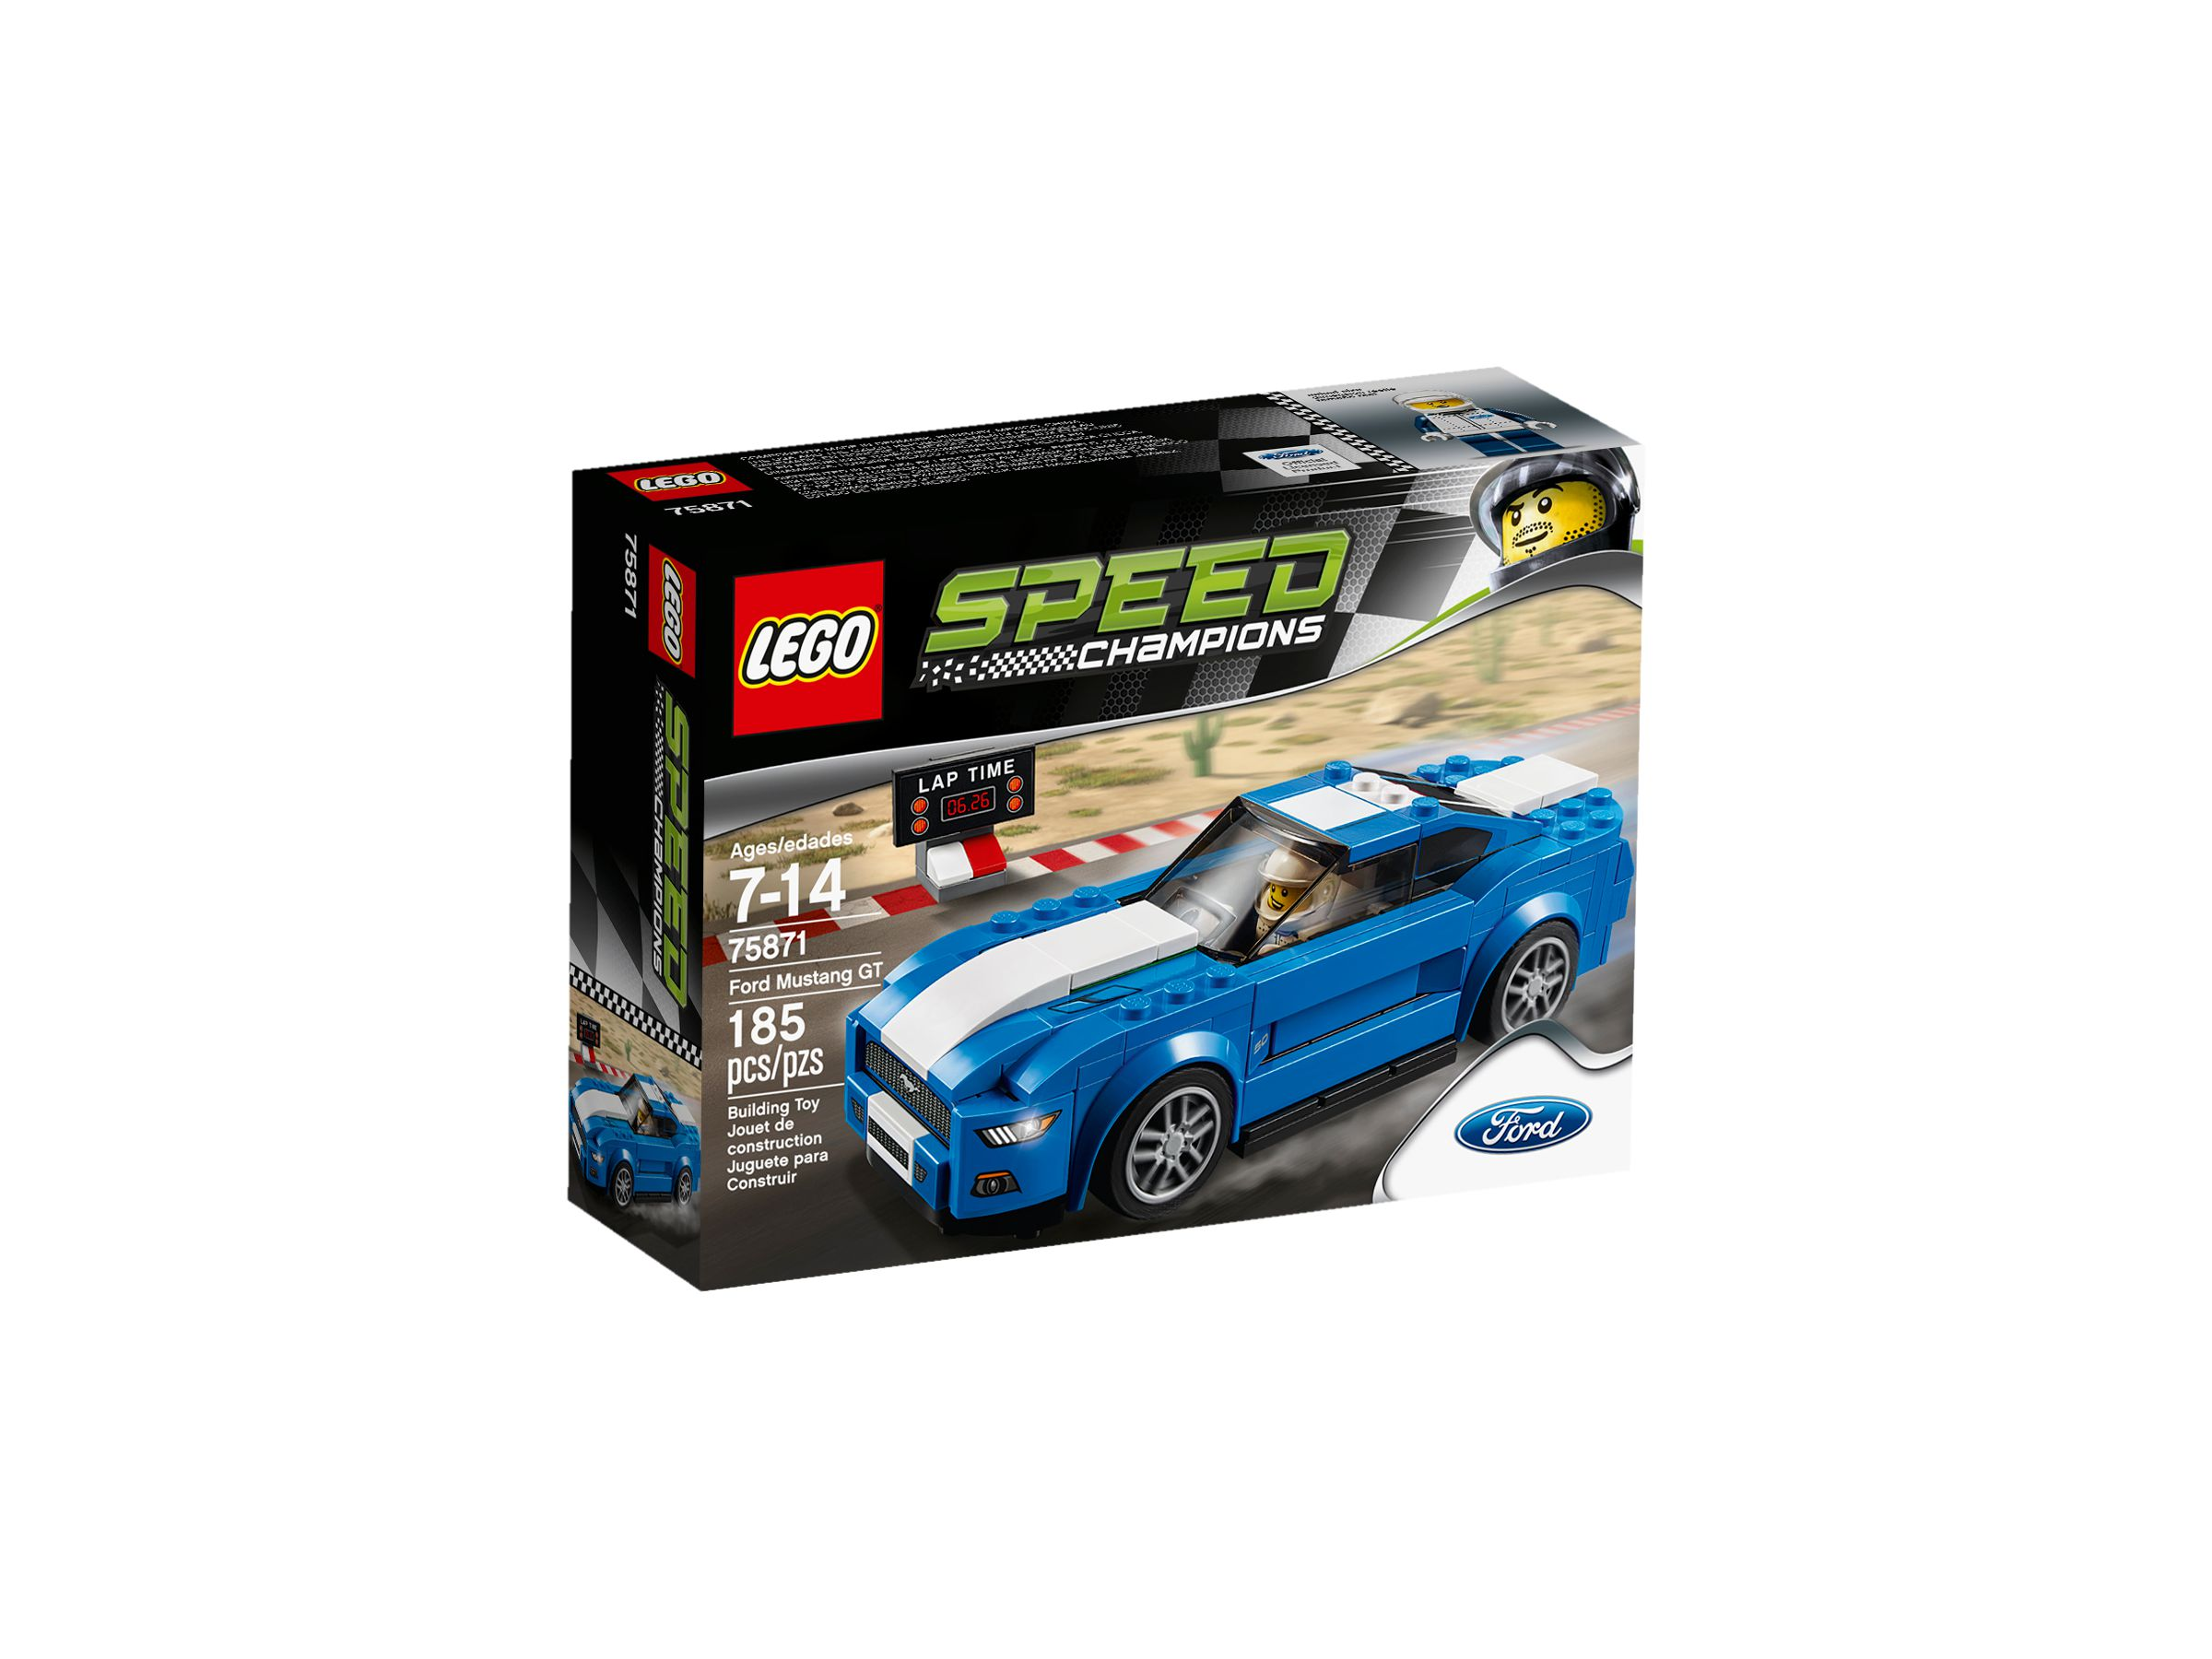 LEGO Speed Champions 75871 Ford Mustang GT LEGO_75871_alt1.jpg